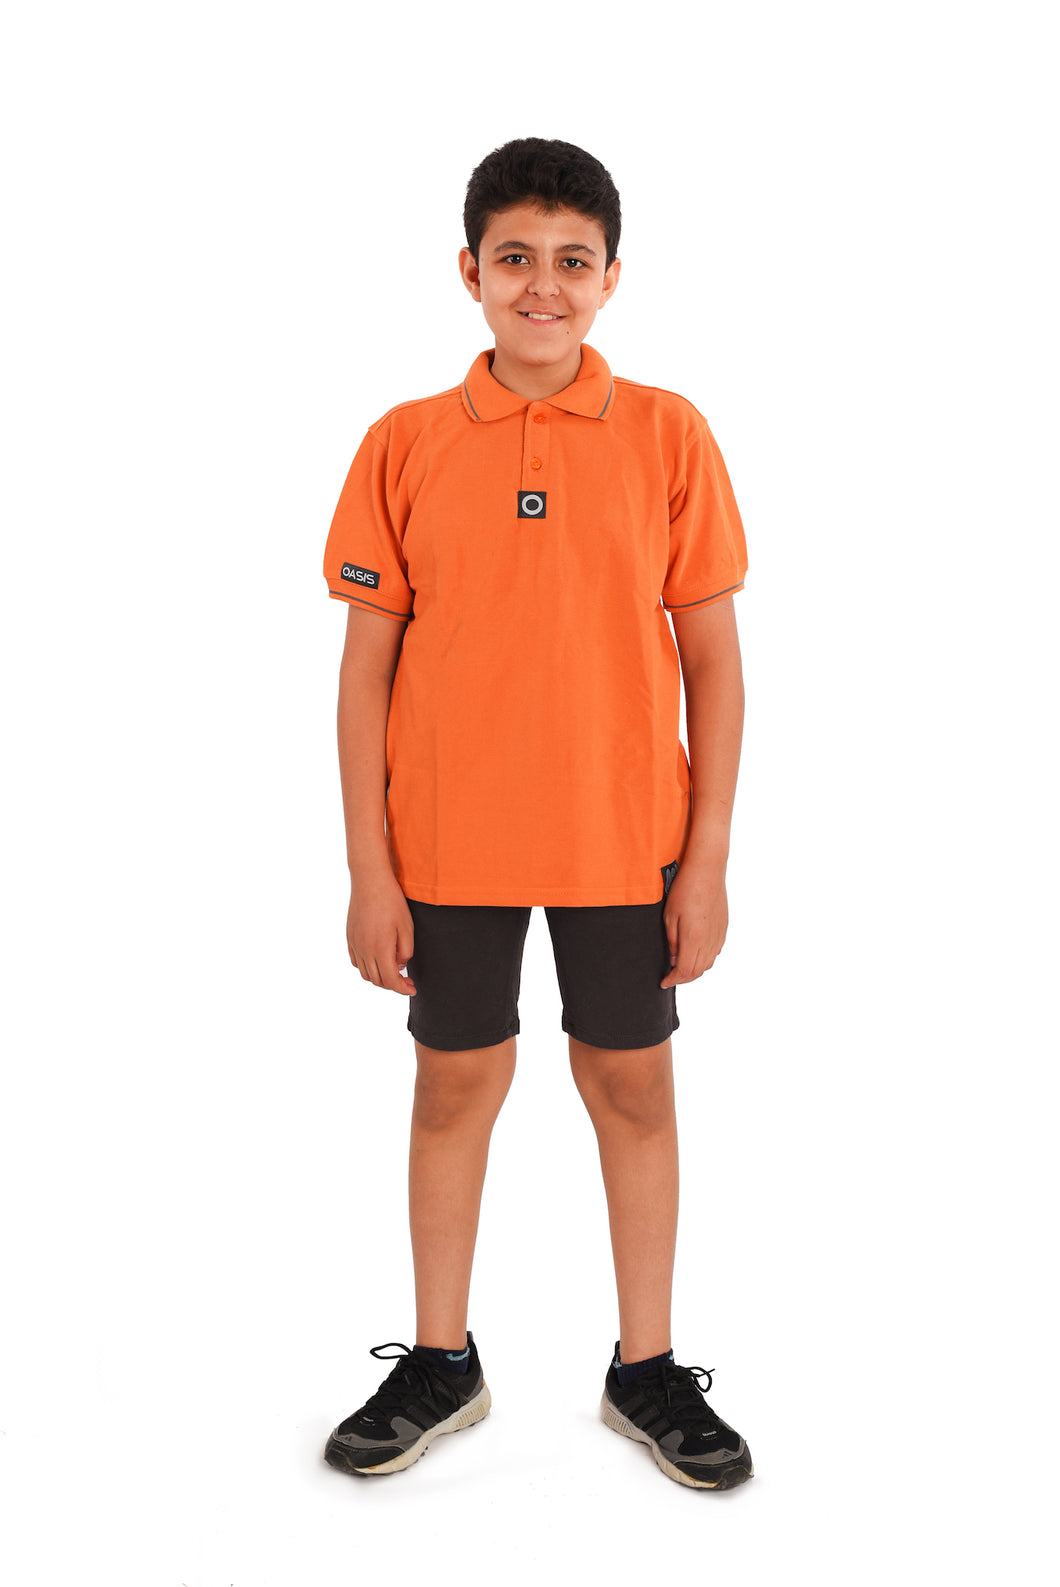 Polo short sleeves, for boys